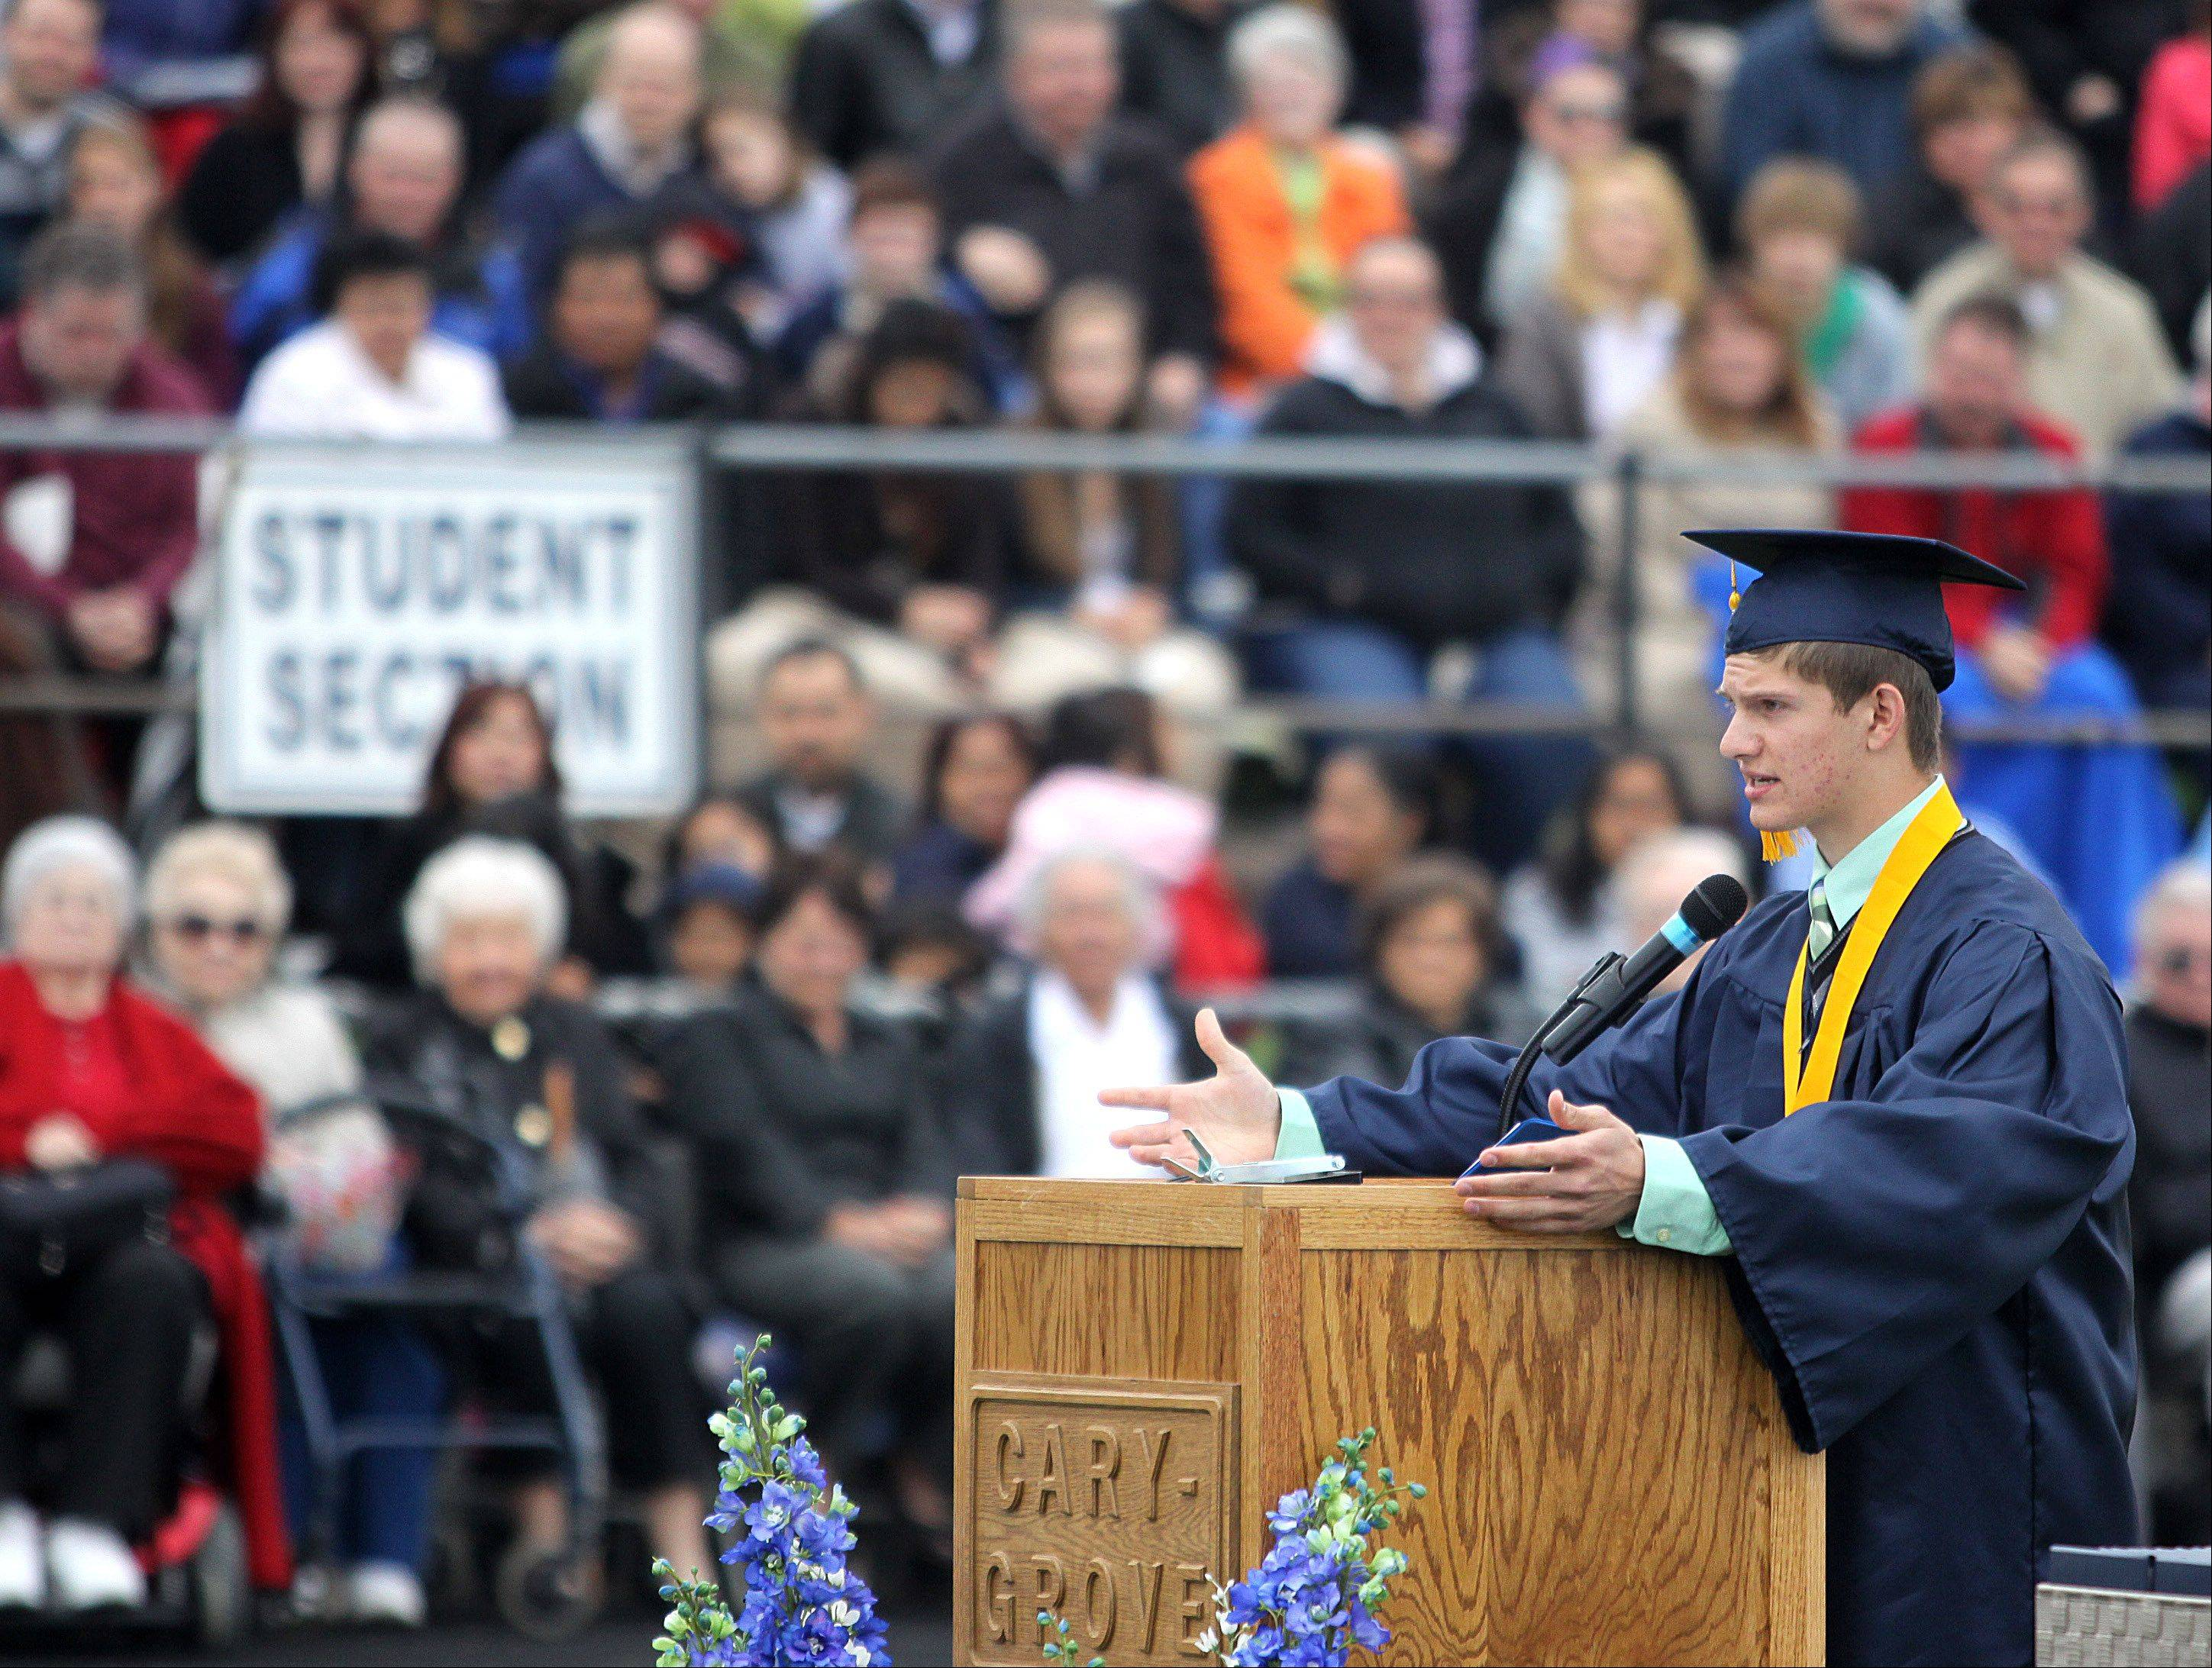 Class of 2013 Valedictorian Ryan DiCicco makes his address during Cary-Grove High School commencement exercises at Al Bohrer Athletic Field on the Campus of Cary-Grove High School on Saturday morning.